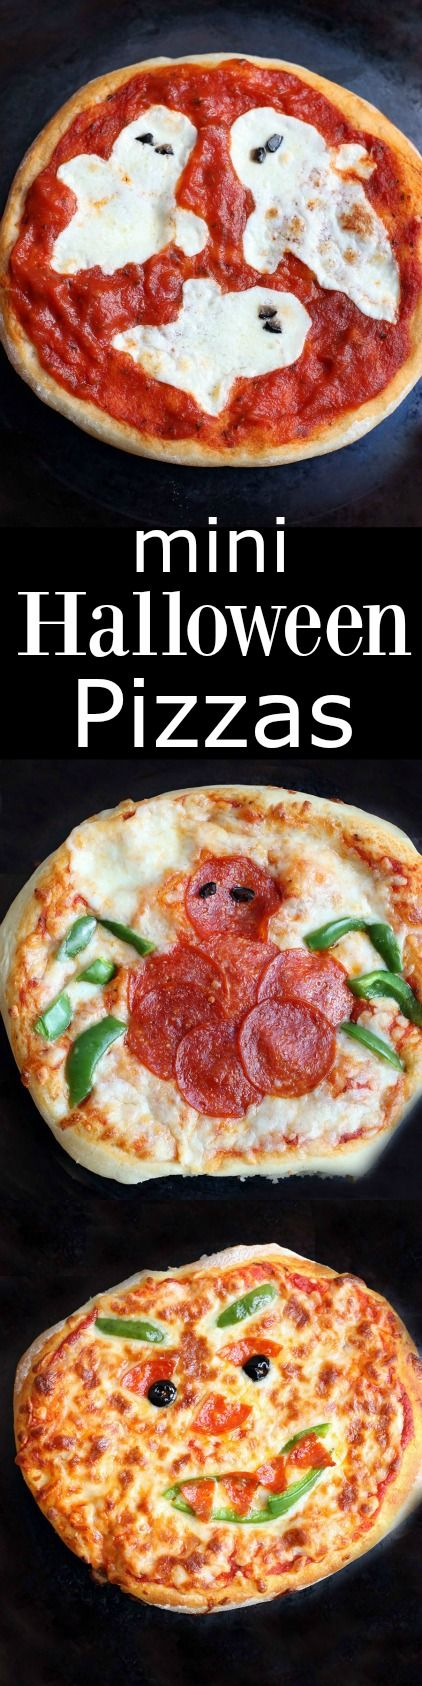 easy mini halloween pizzas make the perfect halloween dinner kids love this fun halloween meal - Halloween Dinner Kids